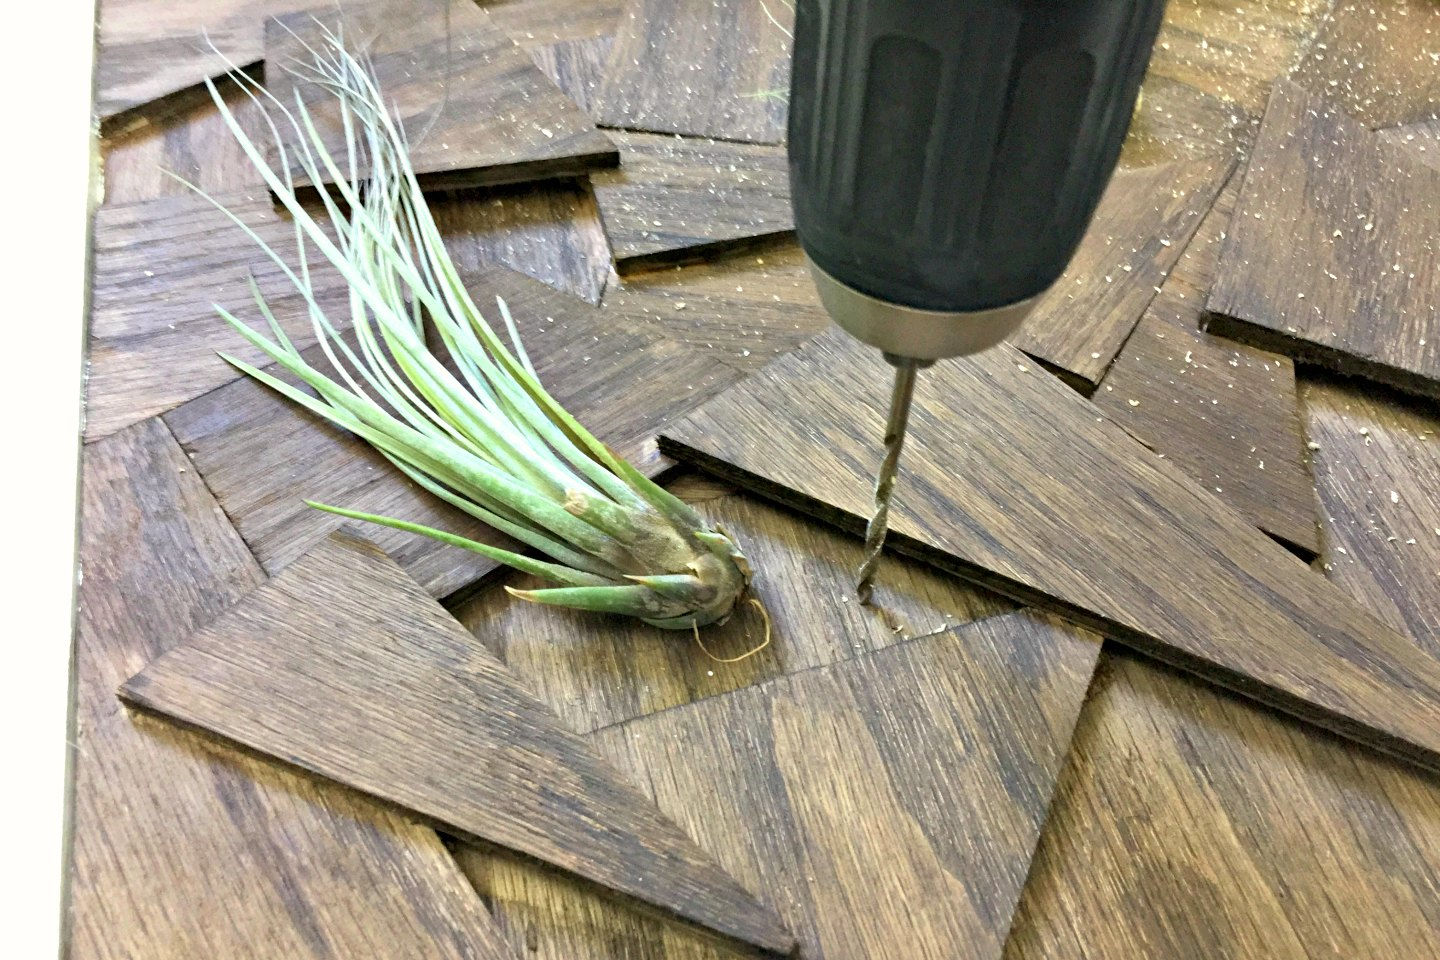 drill through art where you put air plants